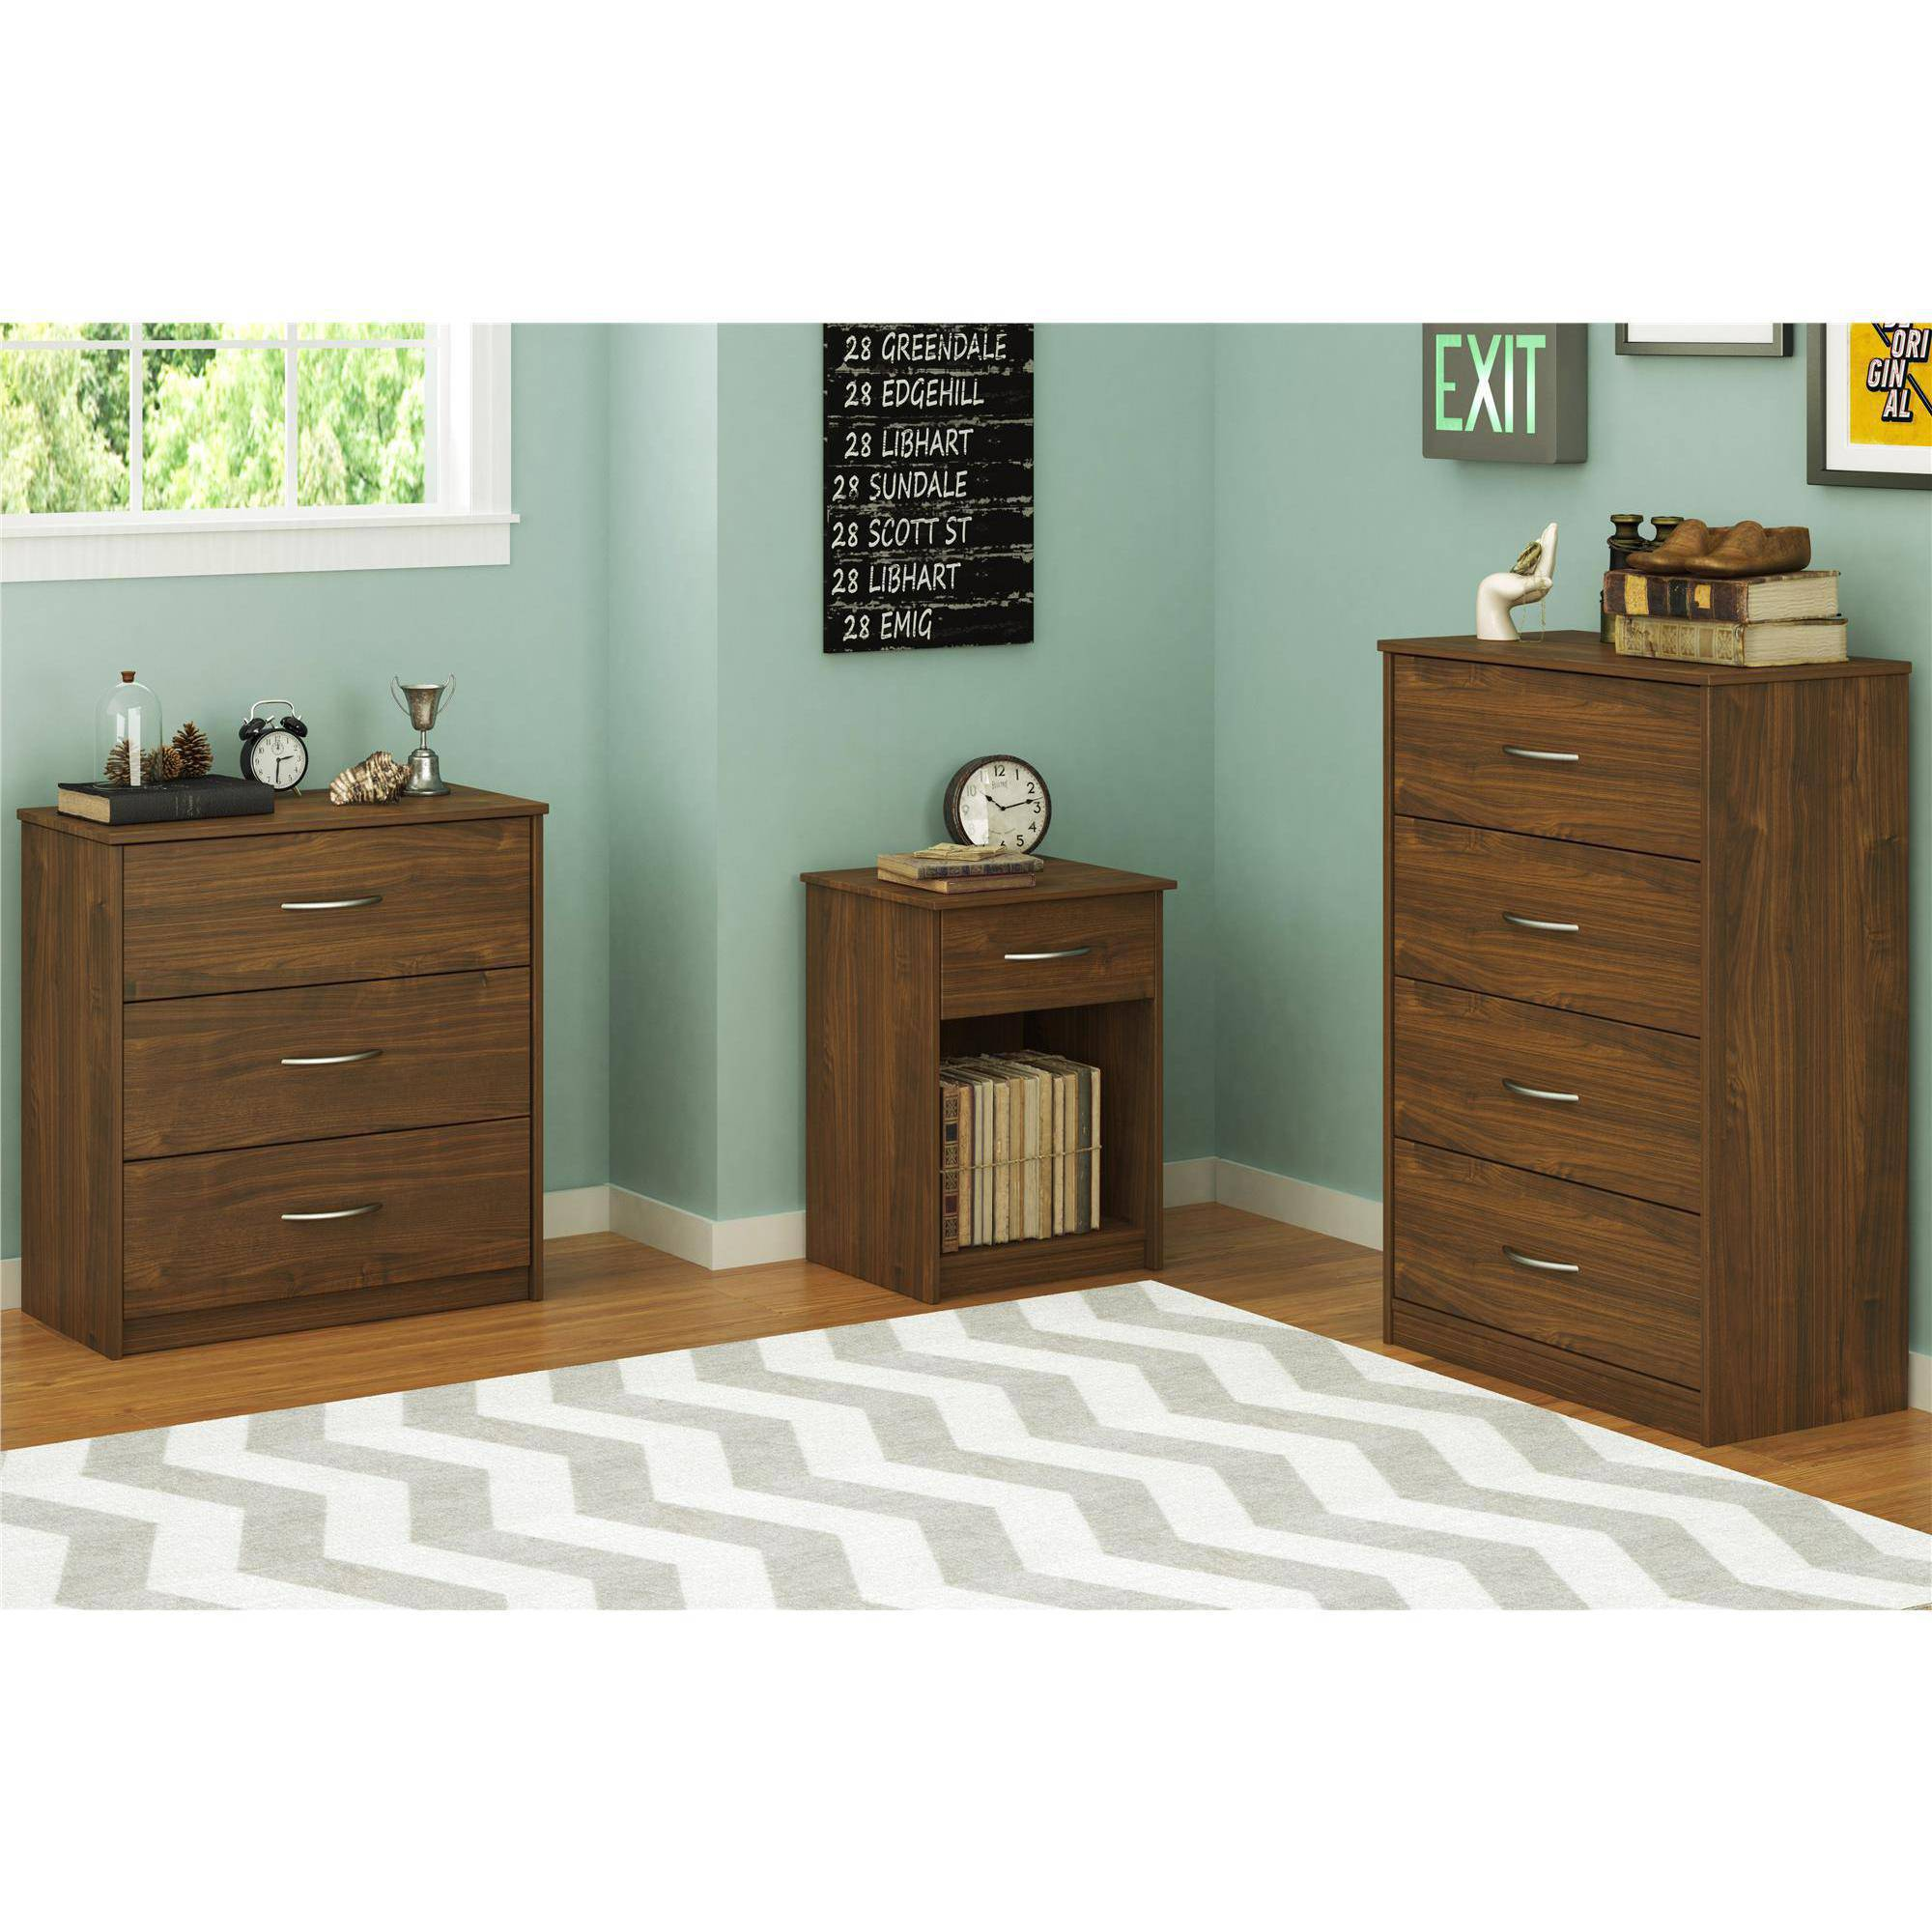 Mainstays 4 Drawer Dresser, Multiple Finishes   Walmart.com